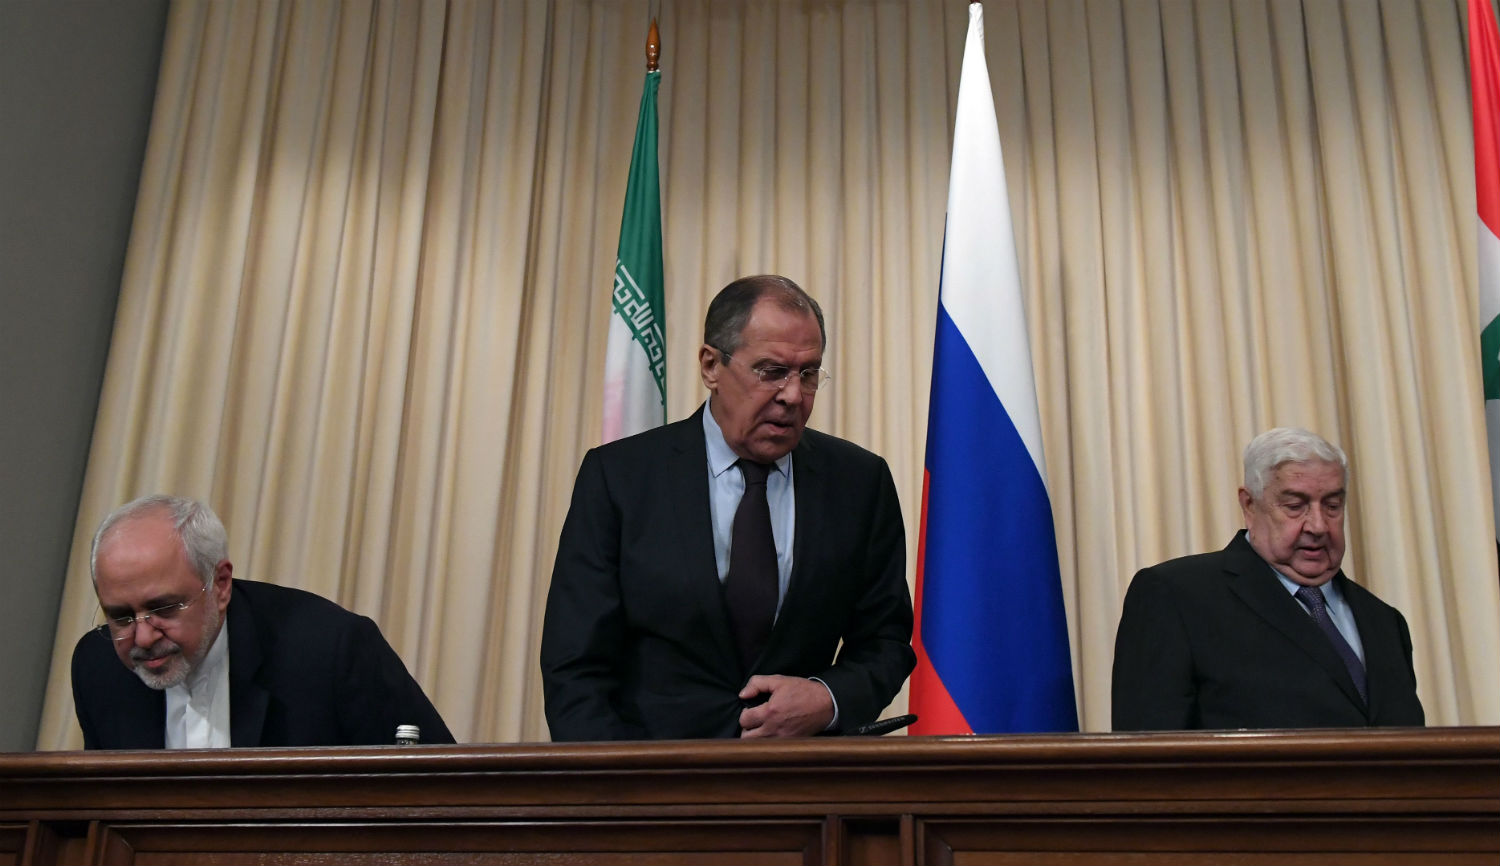 Foreign ministers Mohammad Javad Zarif of Iran, Sergei Lavrov of Russia, and Walid Muallem of Syria at a joint press conference in Moscow on October 28, 2016. KIRILL KUDRYAVTSEV/AFP/Getty Images.